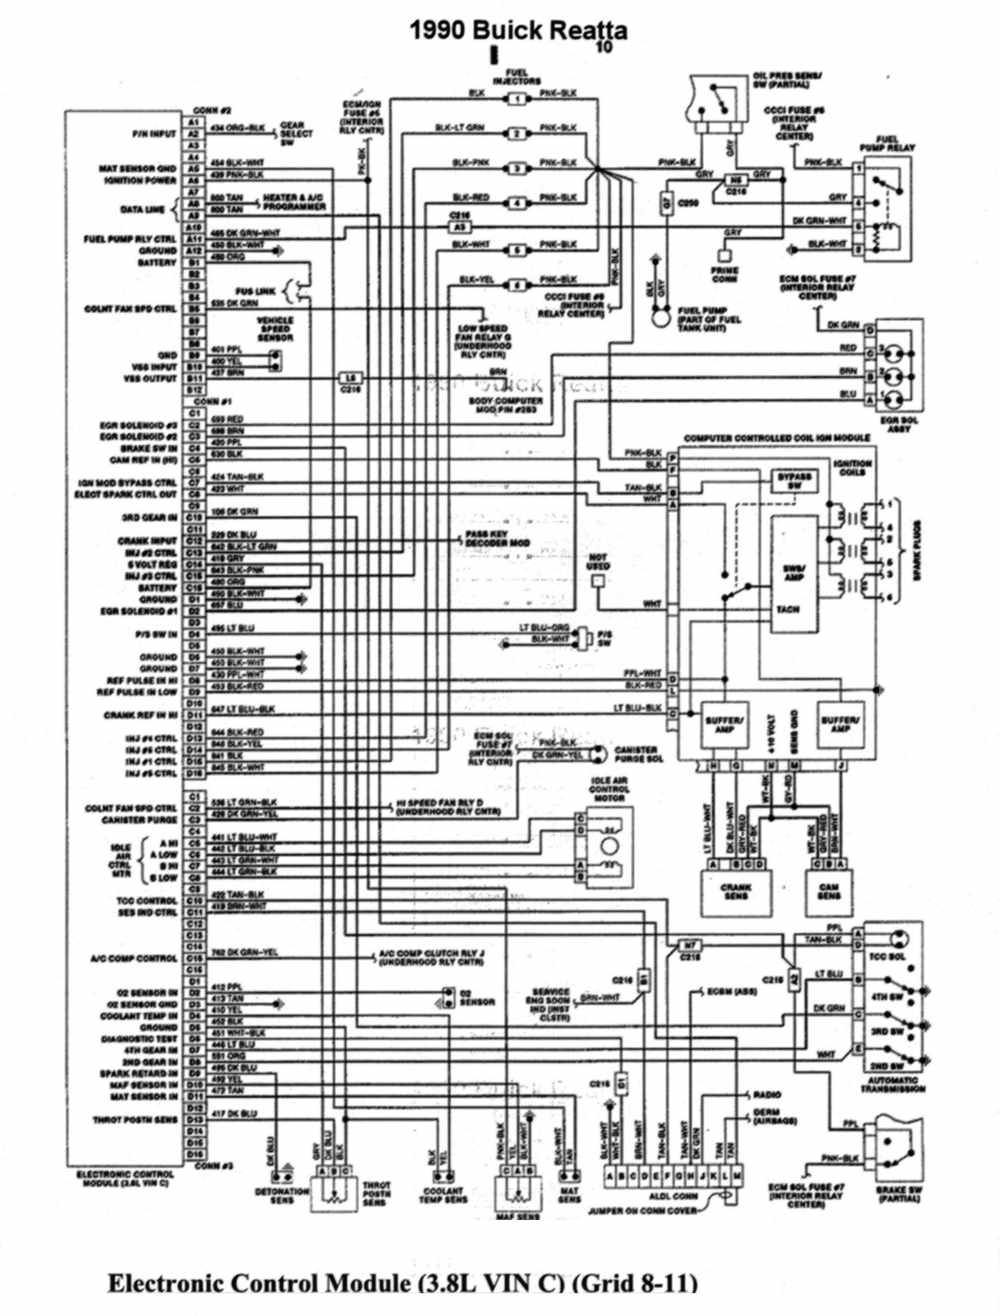 medium resolution of electronic wiring diagram of 1990 buick reatta